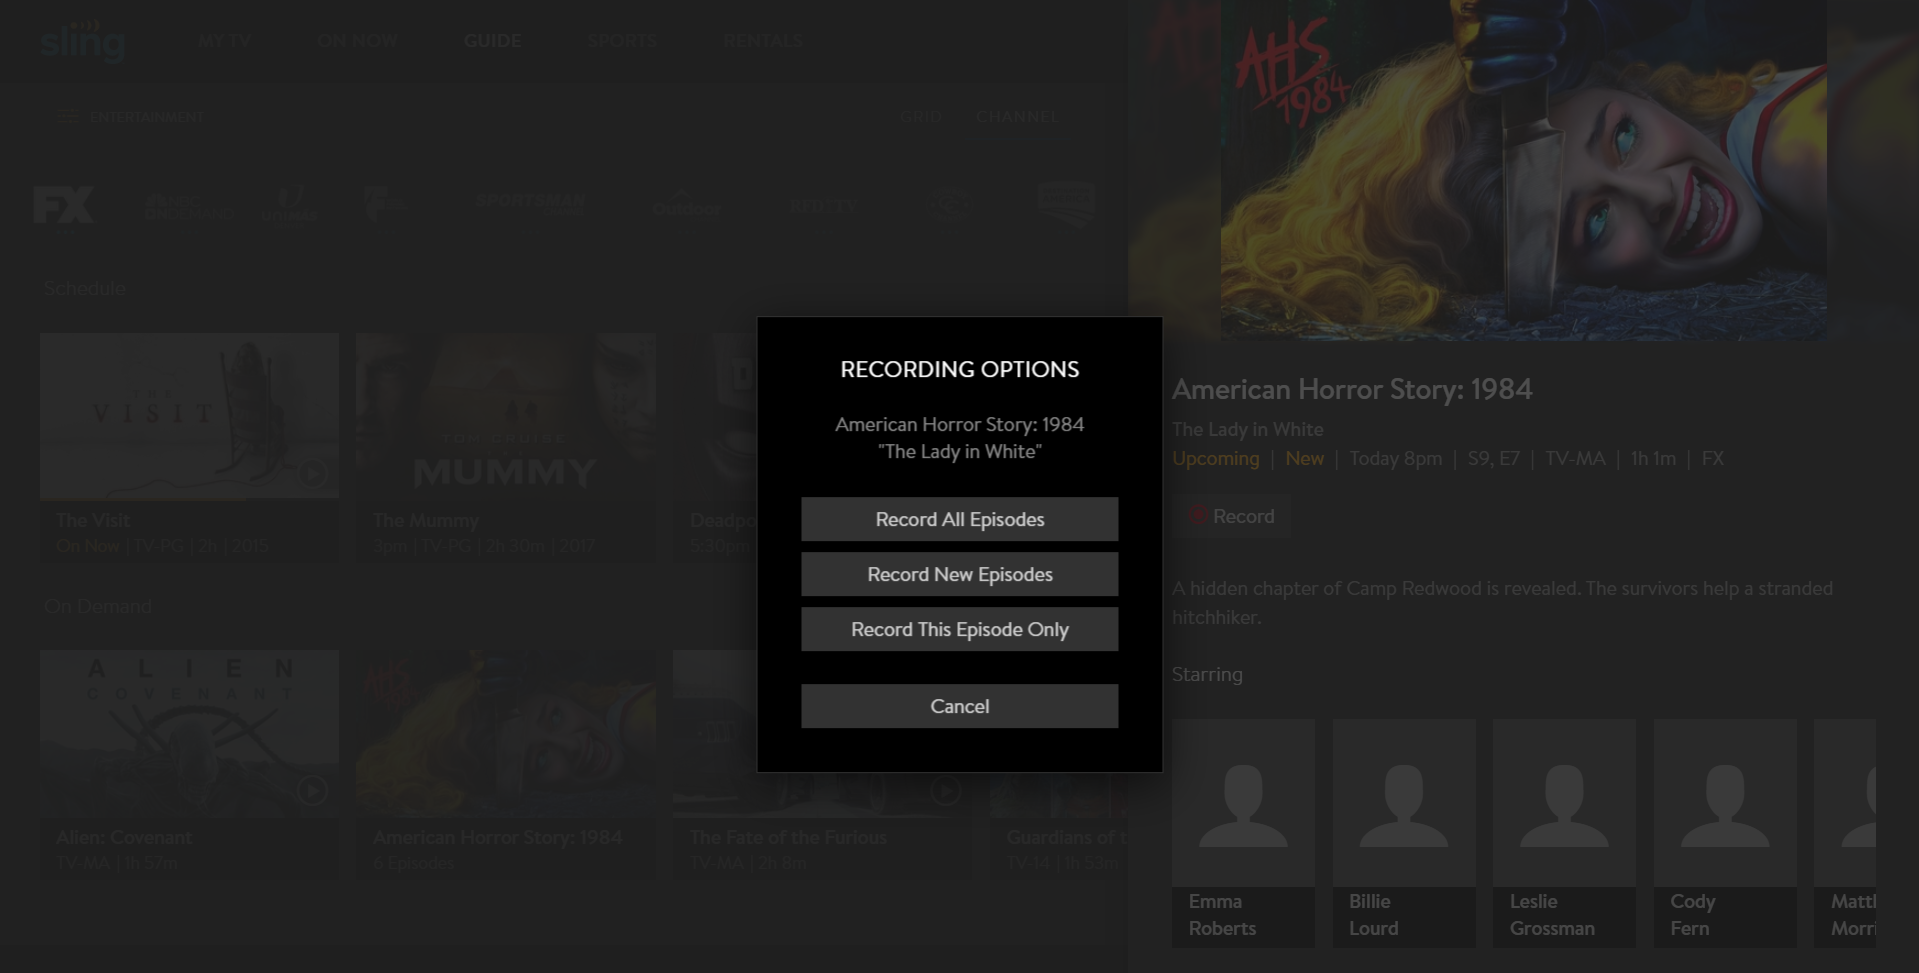 image of recording options pop-up